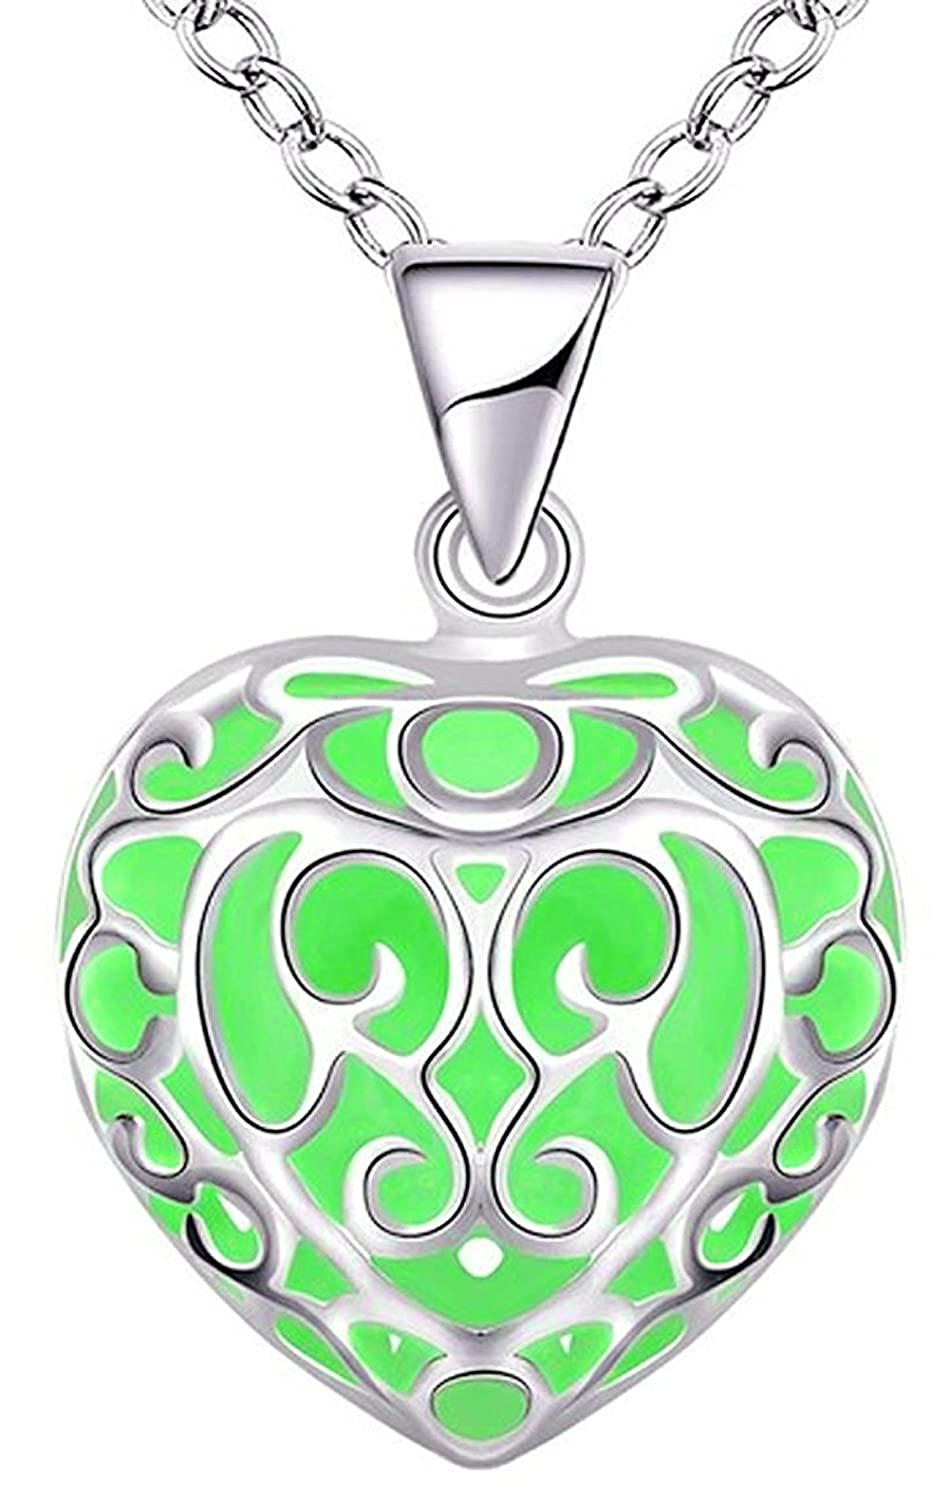 GREEN GLOW IN THE DARK SILVER HEART NECKLACE PENDANT LADIES GIRLS WOMENS